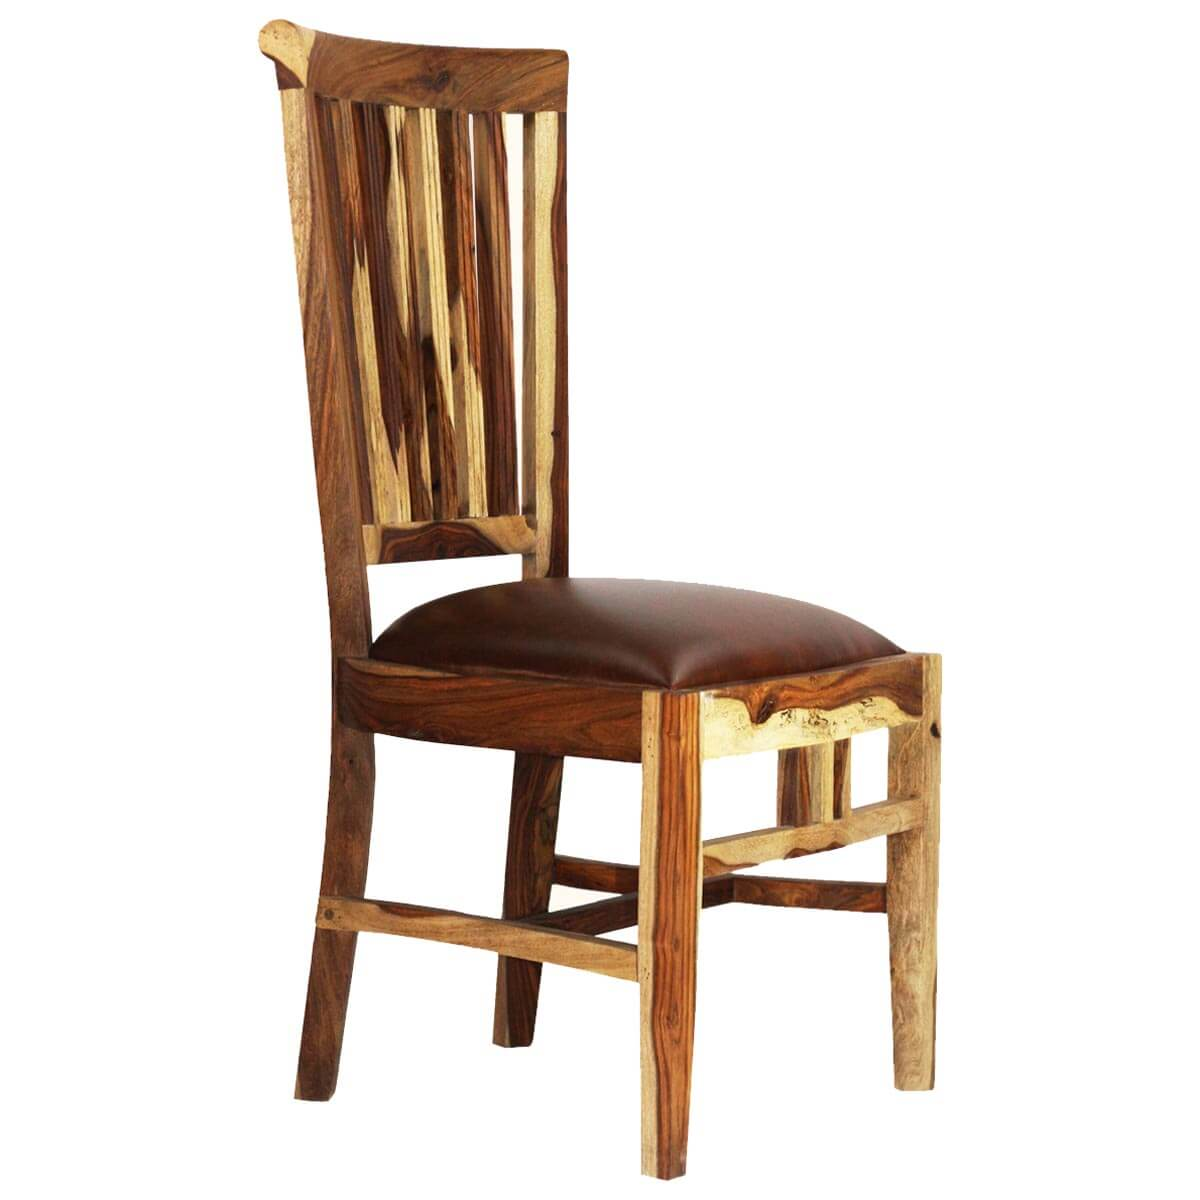 Unfinished Dining Room Chairs: Dallas Ranch Comb Back Solid Wood Upholstered Dining Chair